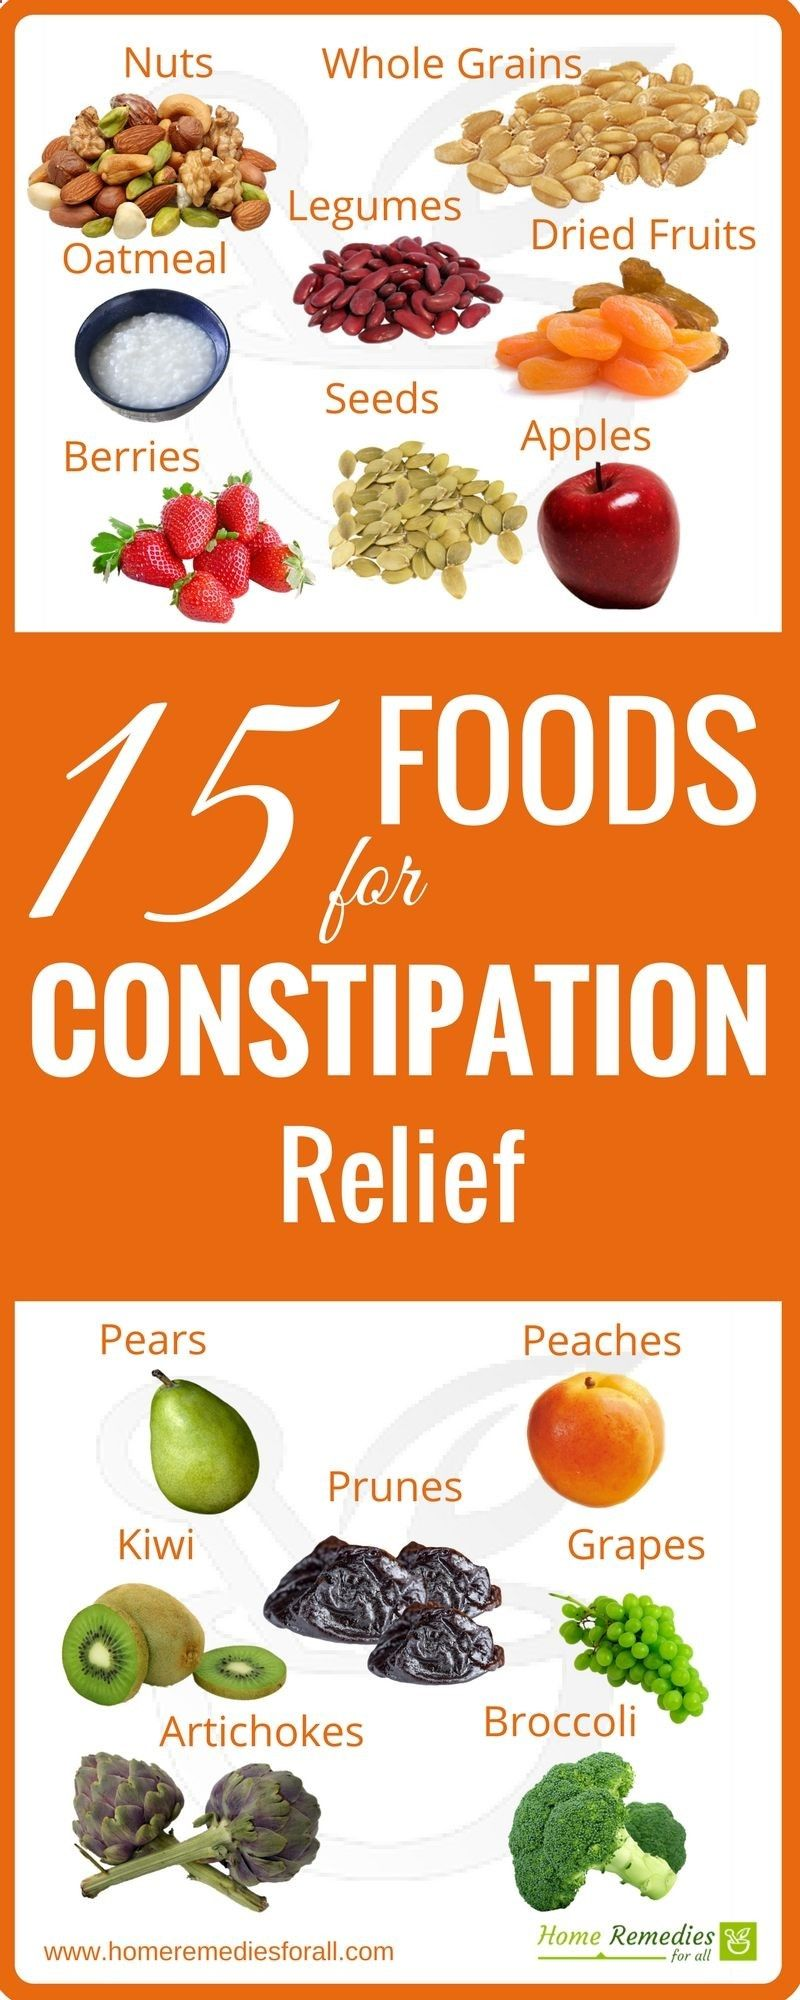 pin by amber albert on health and fitness | constipation relief